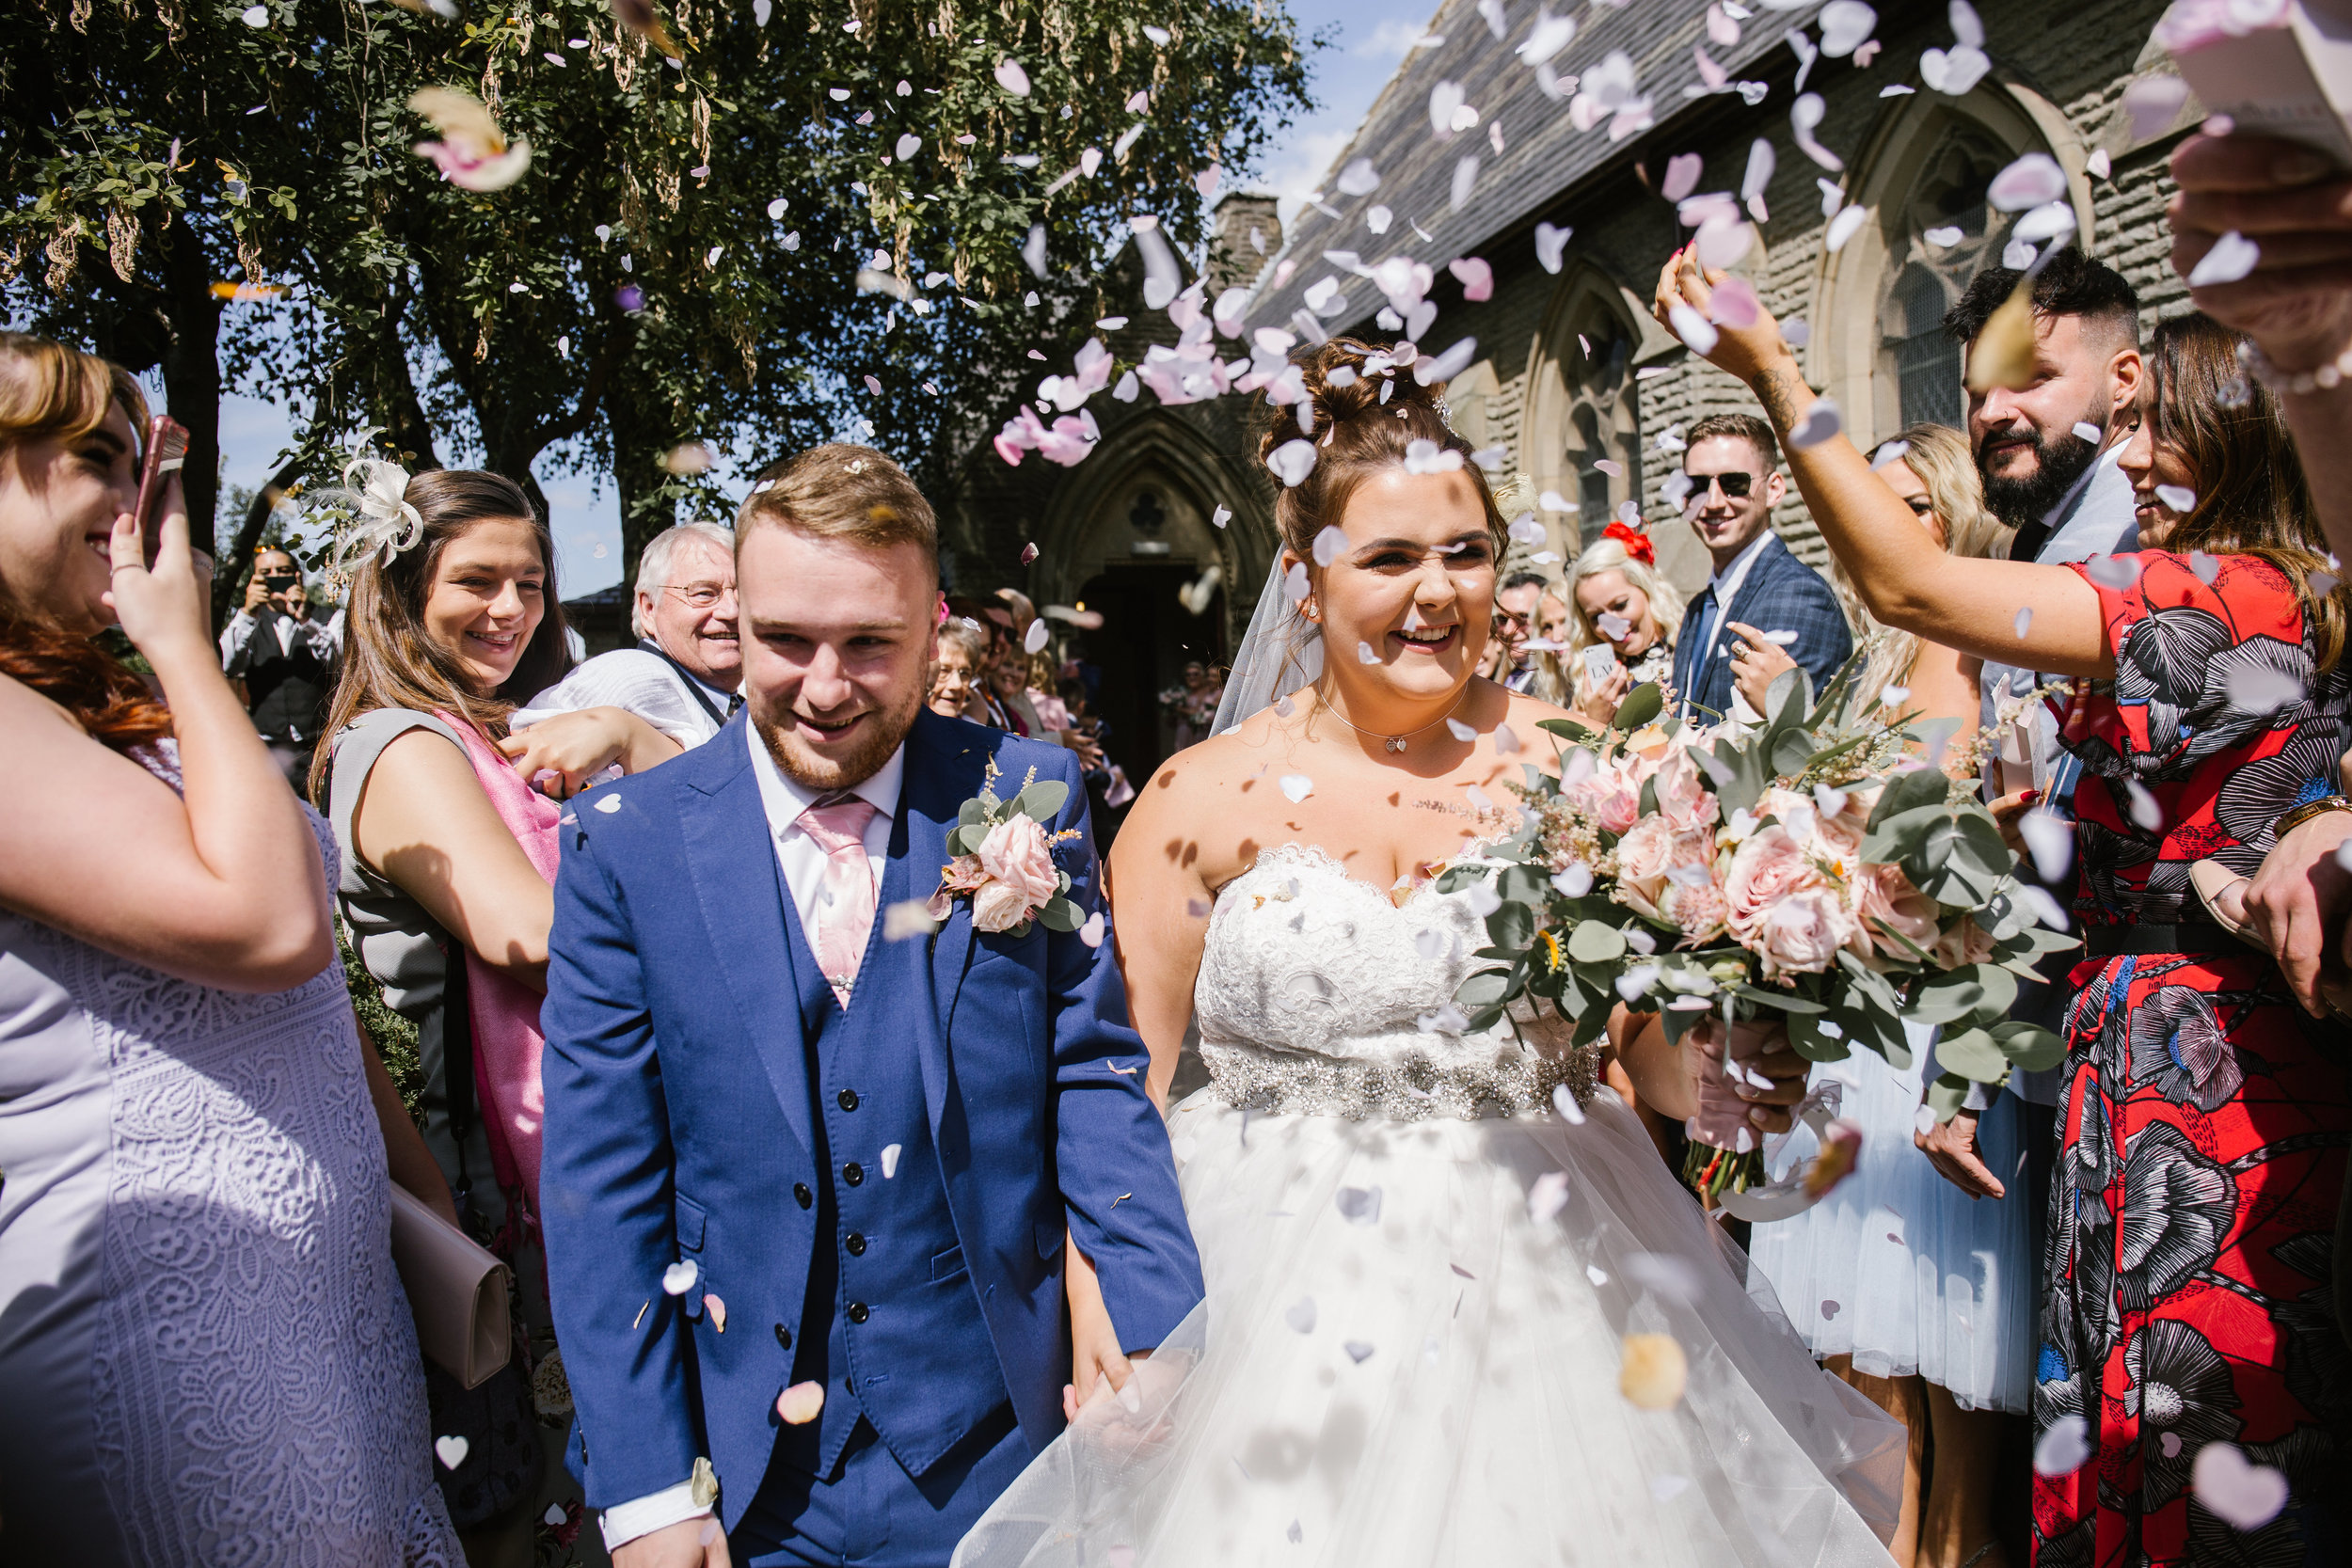 pink confetti gets thrown at bride and groom after their wedding ceremony in manchester